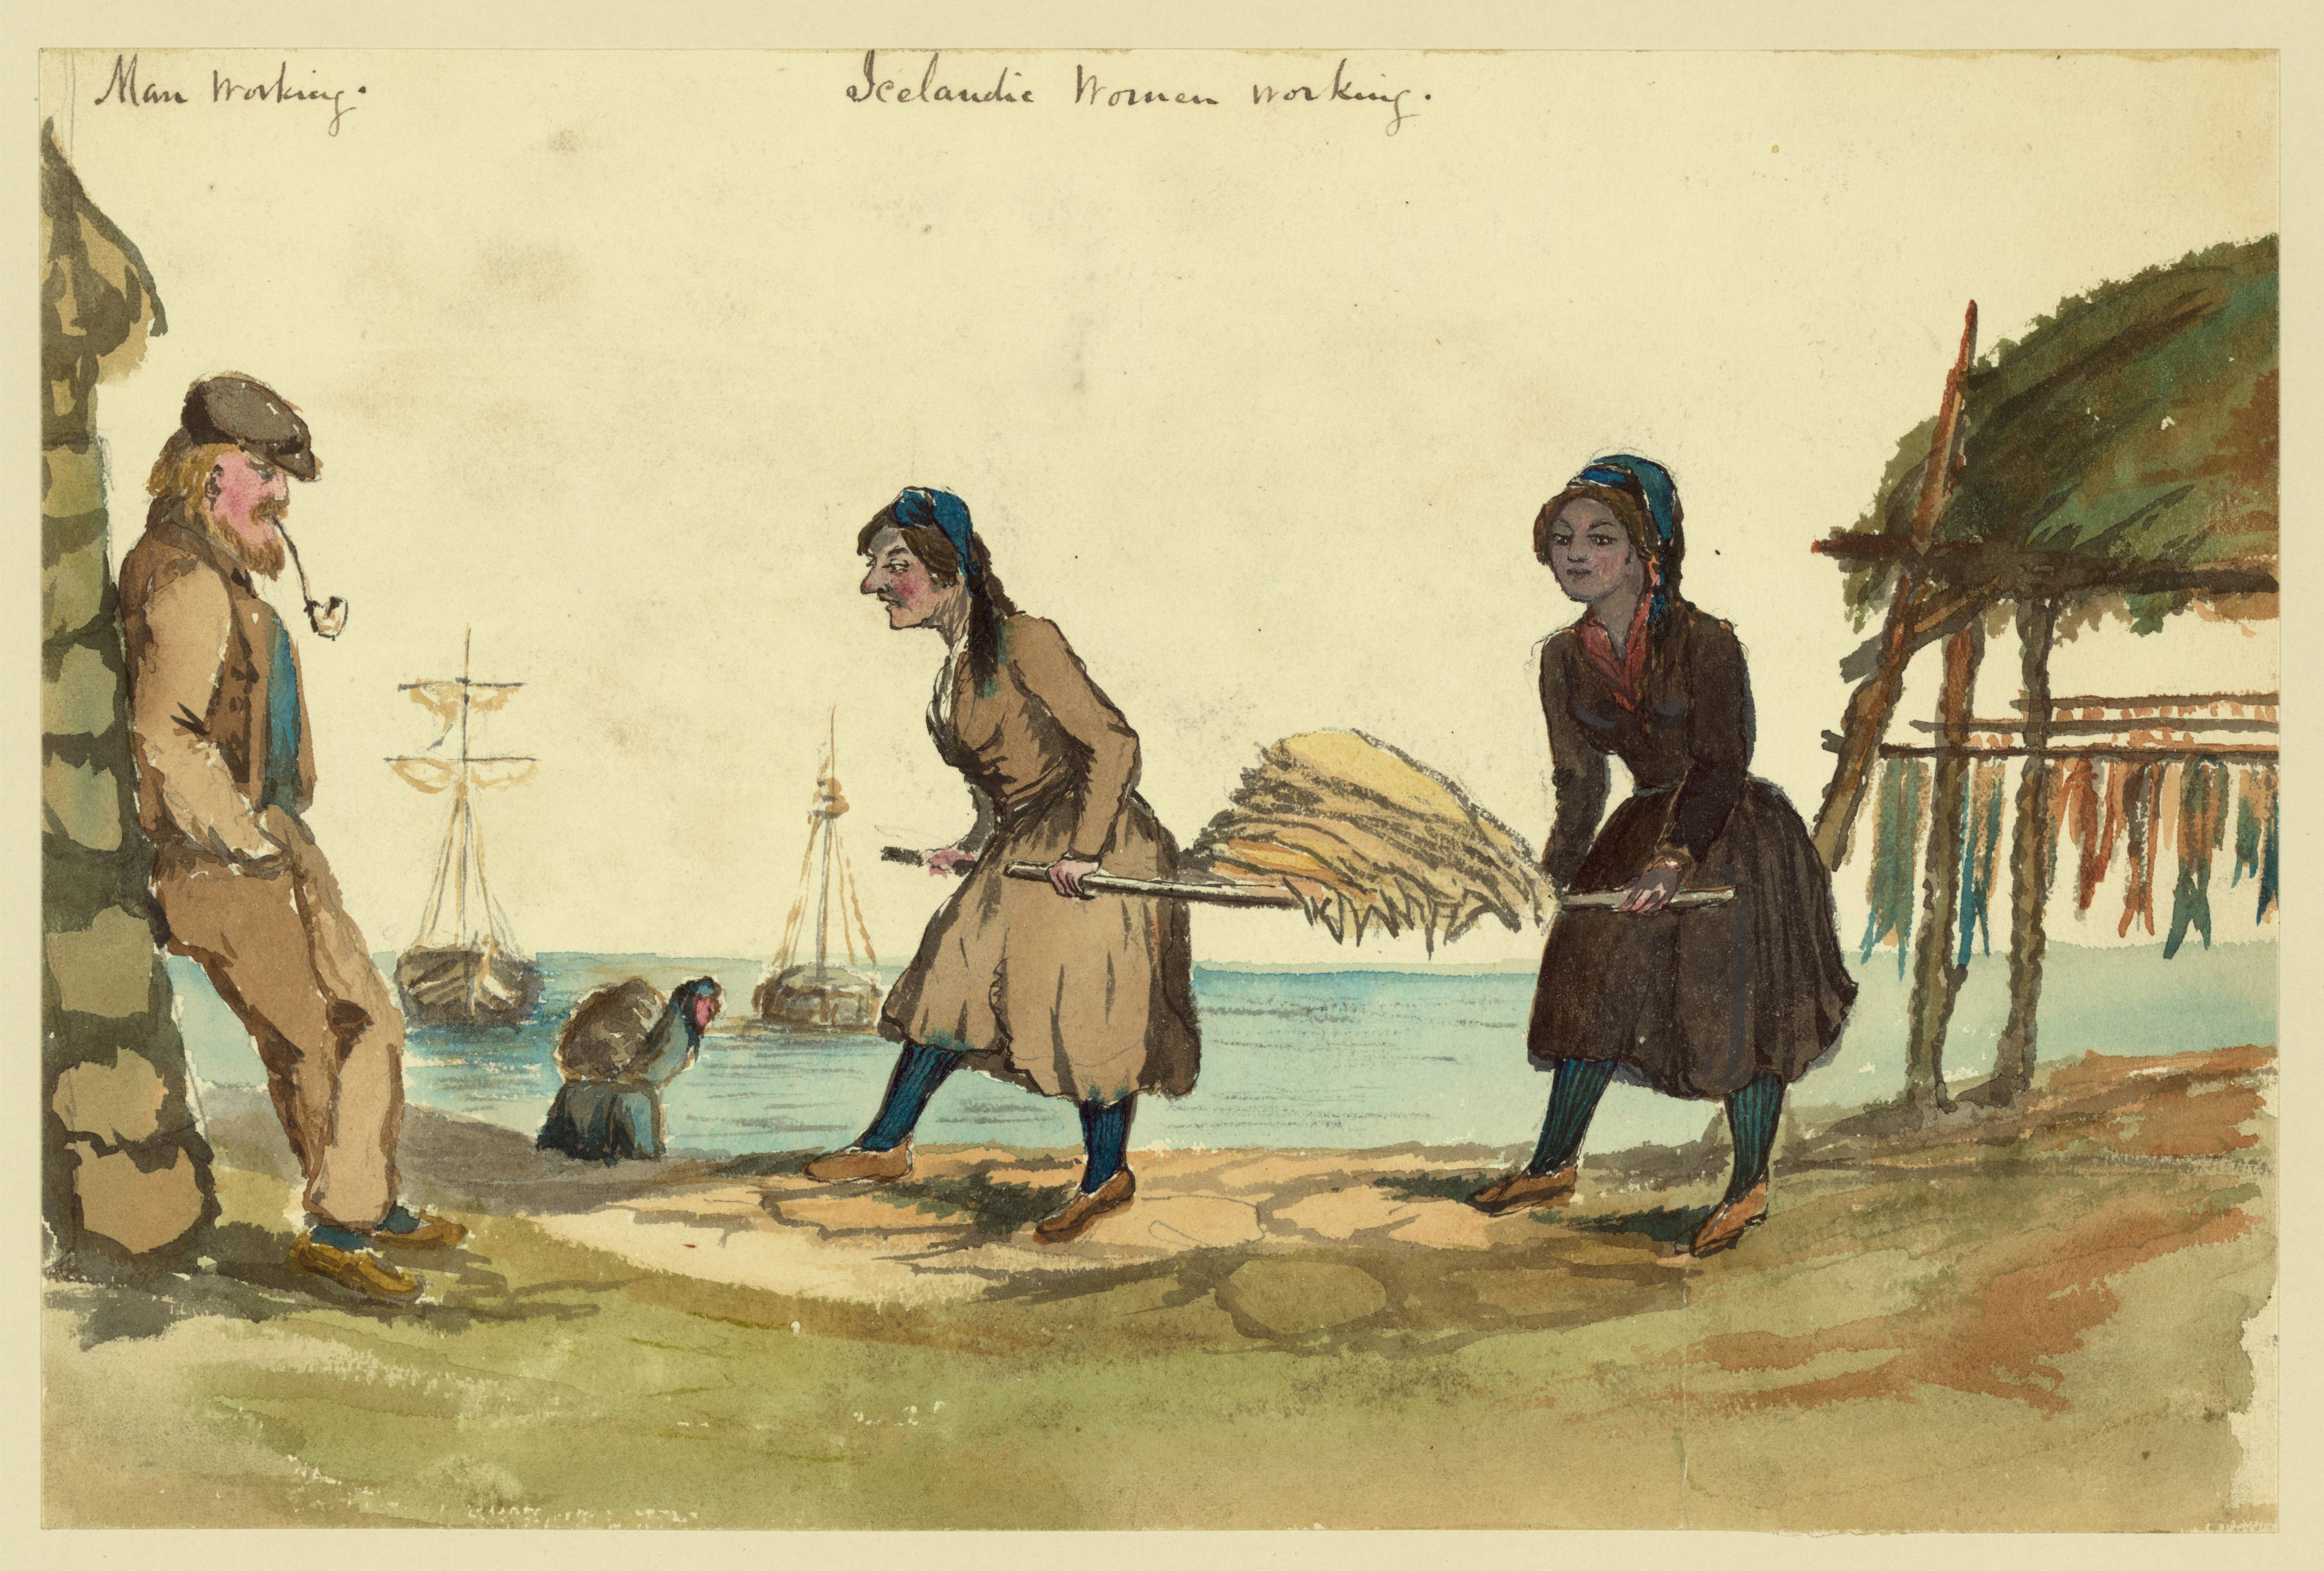 Watercolour painting. A man leans on a wall smoking a pipe to the left. In the centre, two women carry fish on a stretcher-type carrier. More fish hung out to dry on a wooden frame at right. In the background, another women carries a pack on her back and two ships are visible in the sea behind.